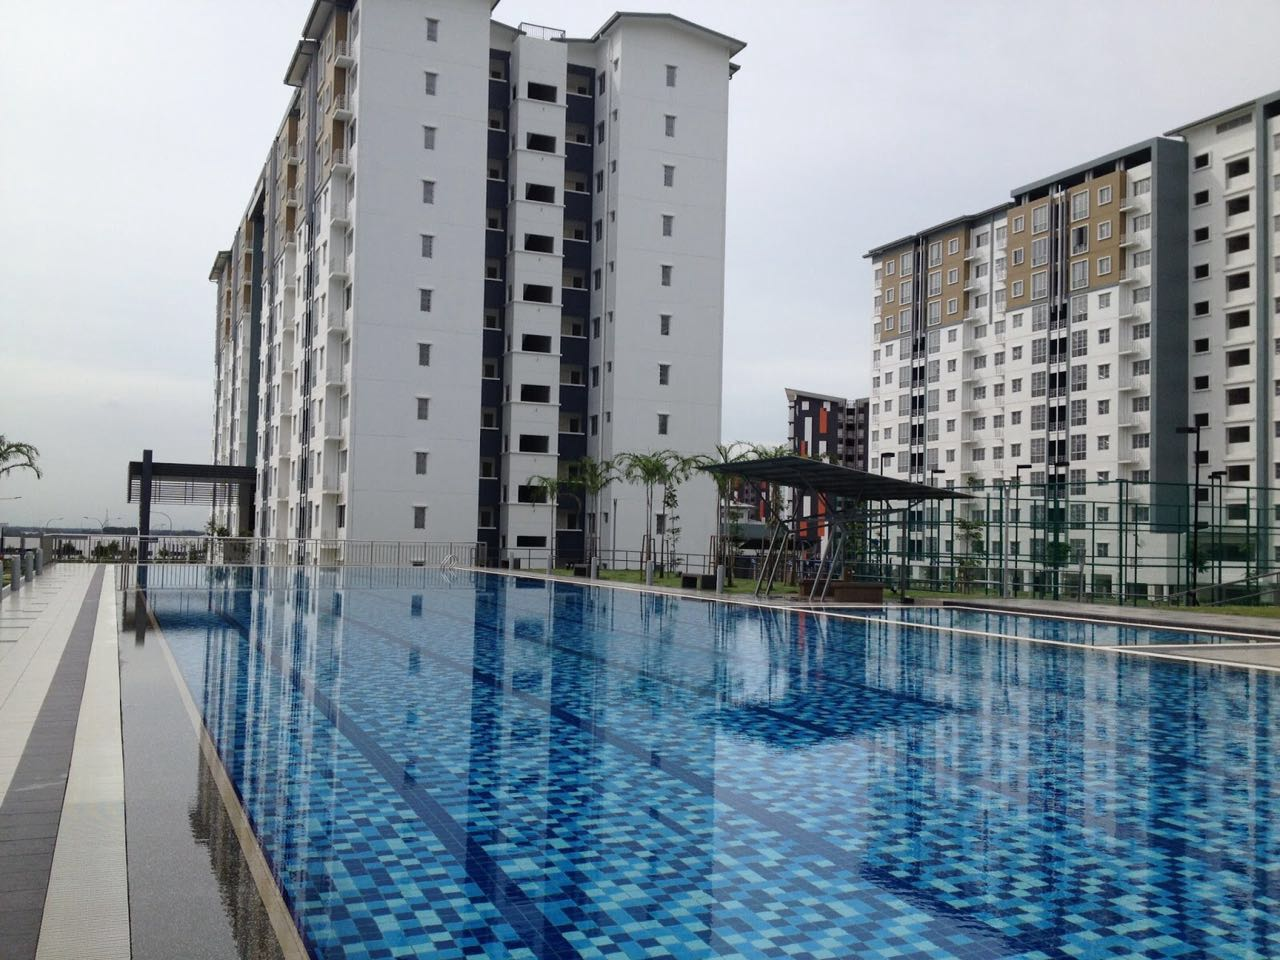 Seri Baiduri Apartment Setia Alam Shah Alam For Sale!